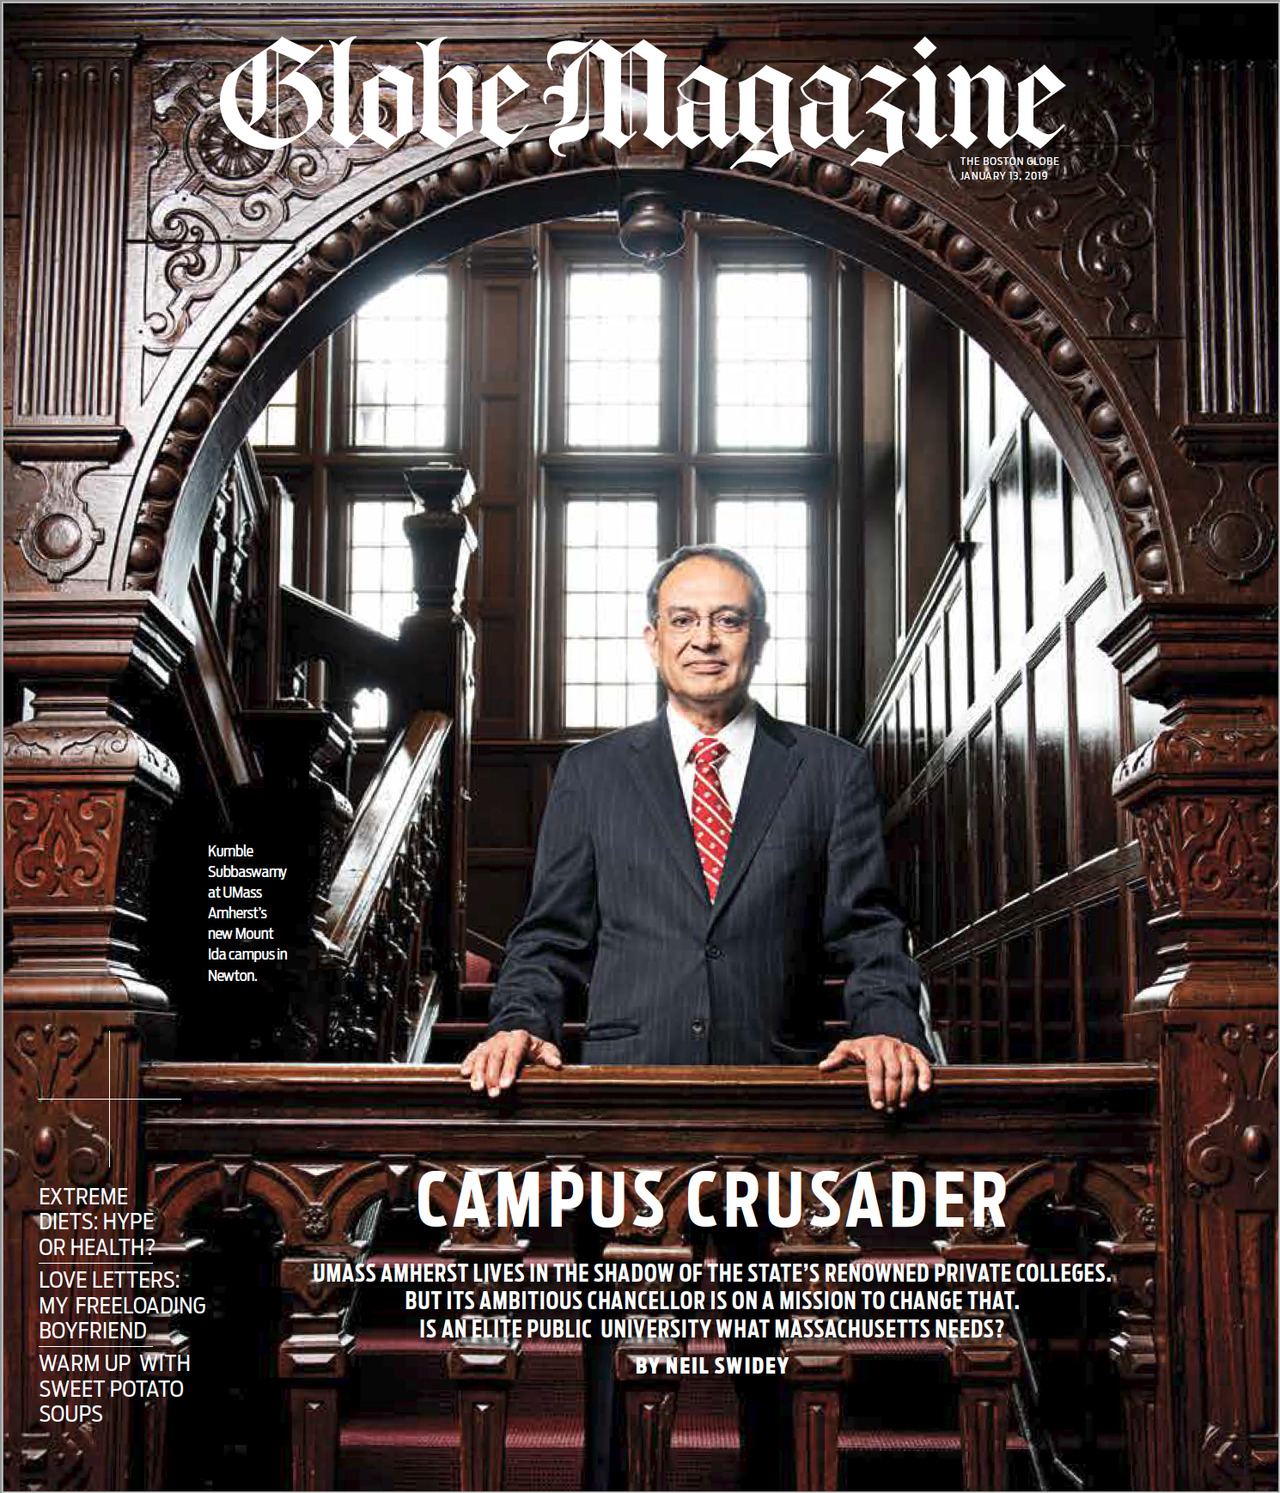 Boston Globe magazine cover featuring UMAss Amherst Chancellor Subbaswamy